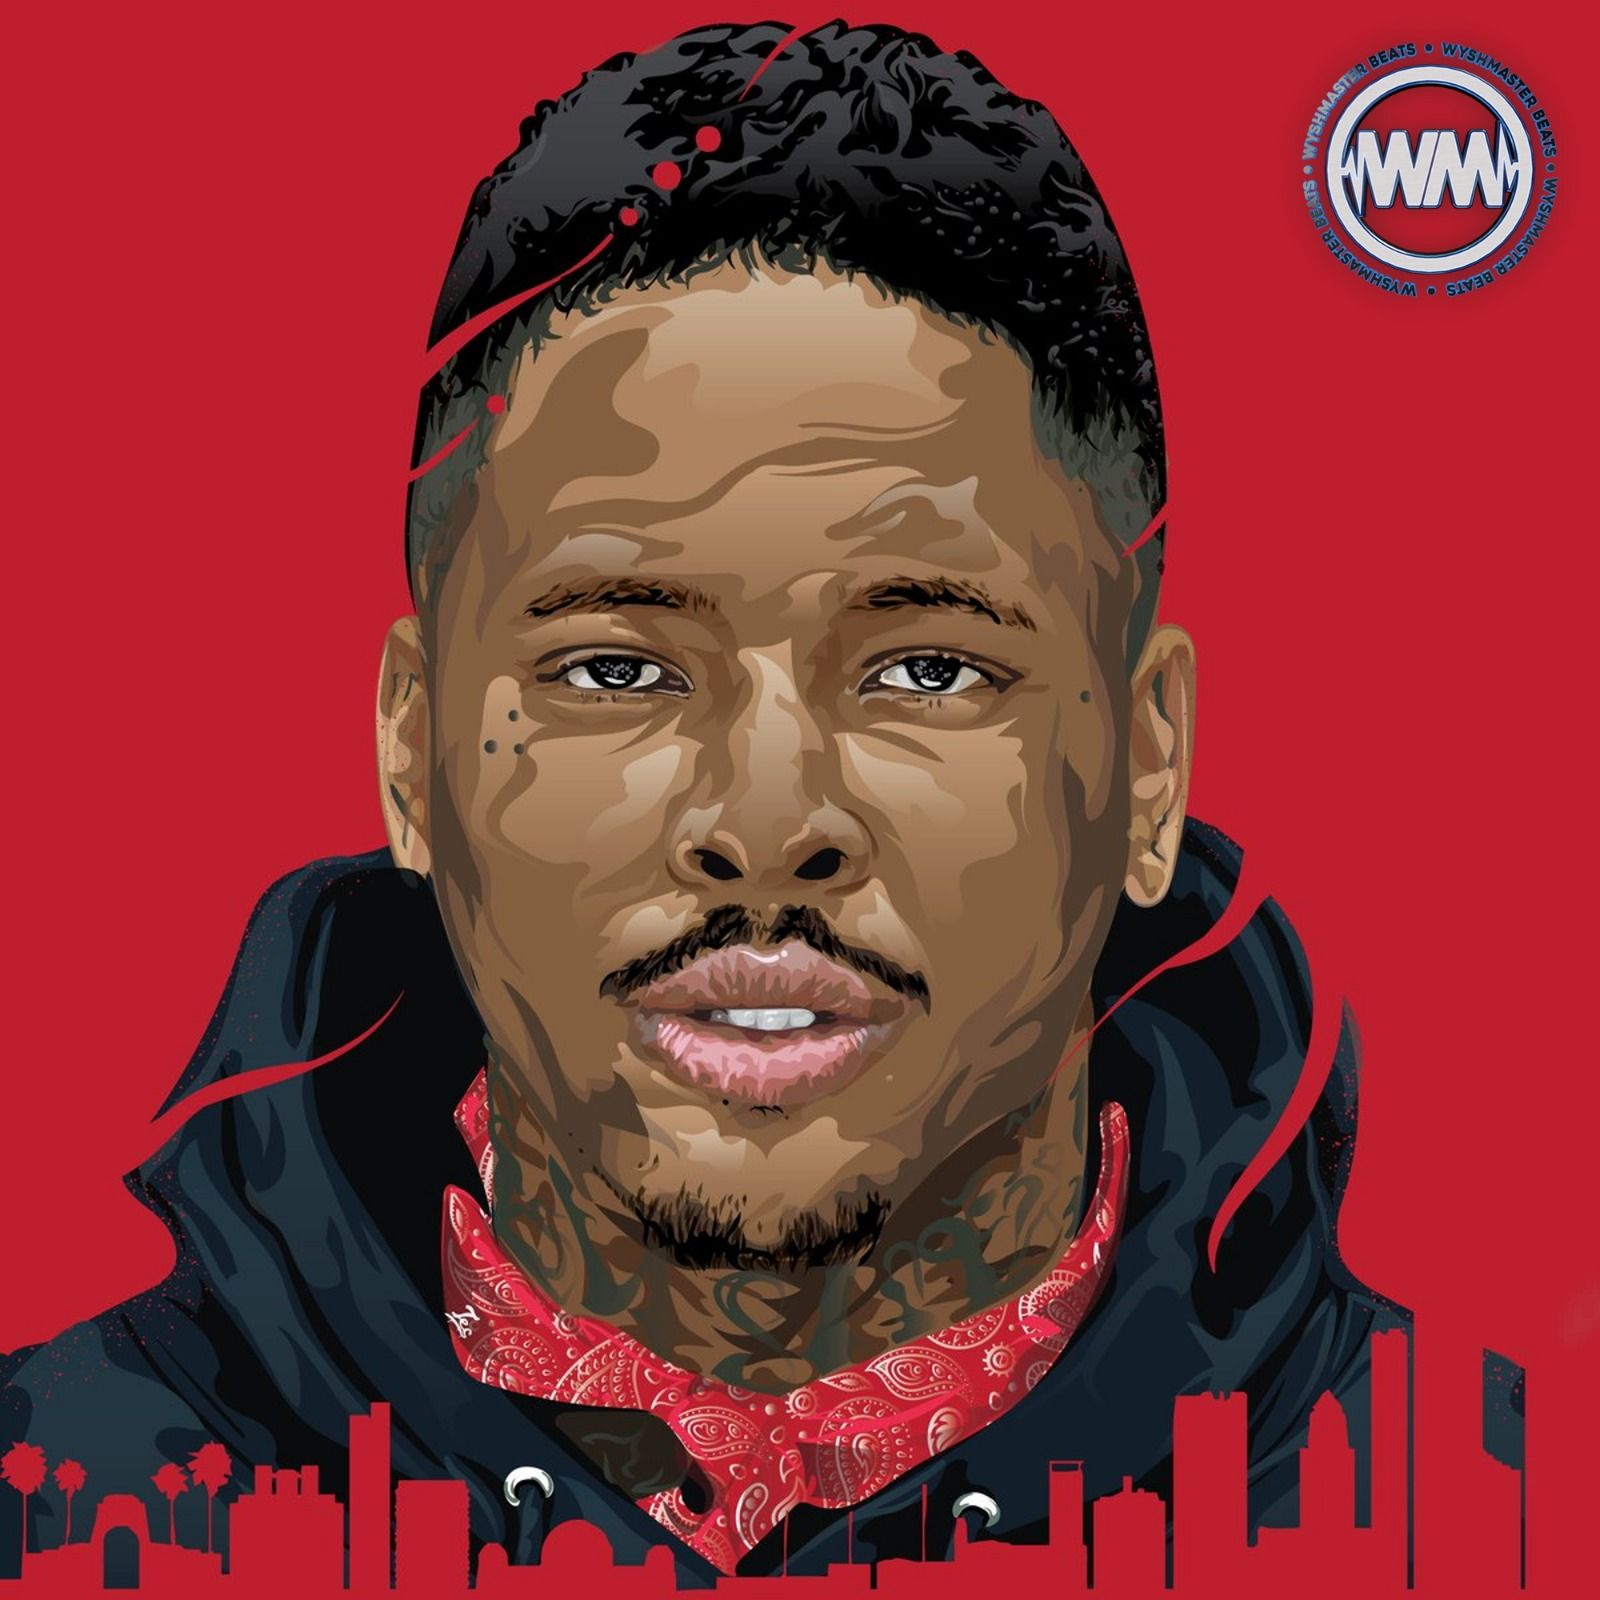 Loot | FREE YG x Blueface Type Beat 2019 | West Coast Type Beat by